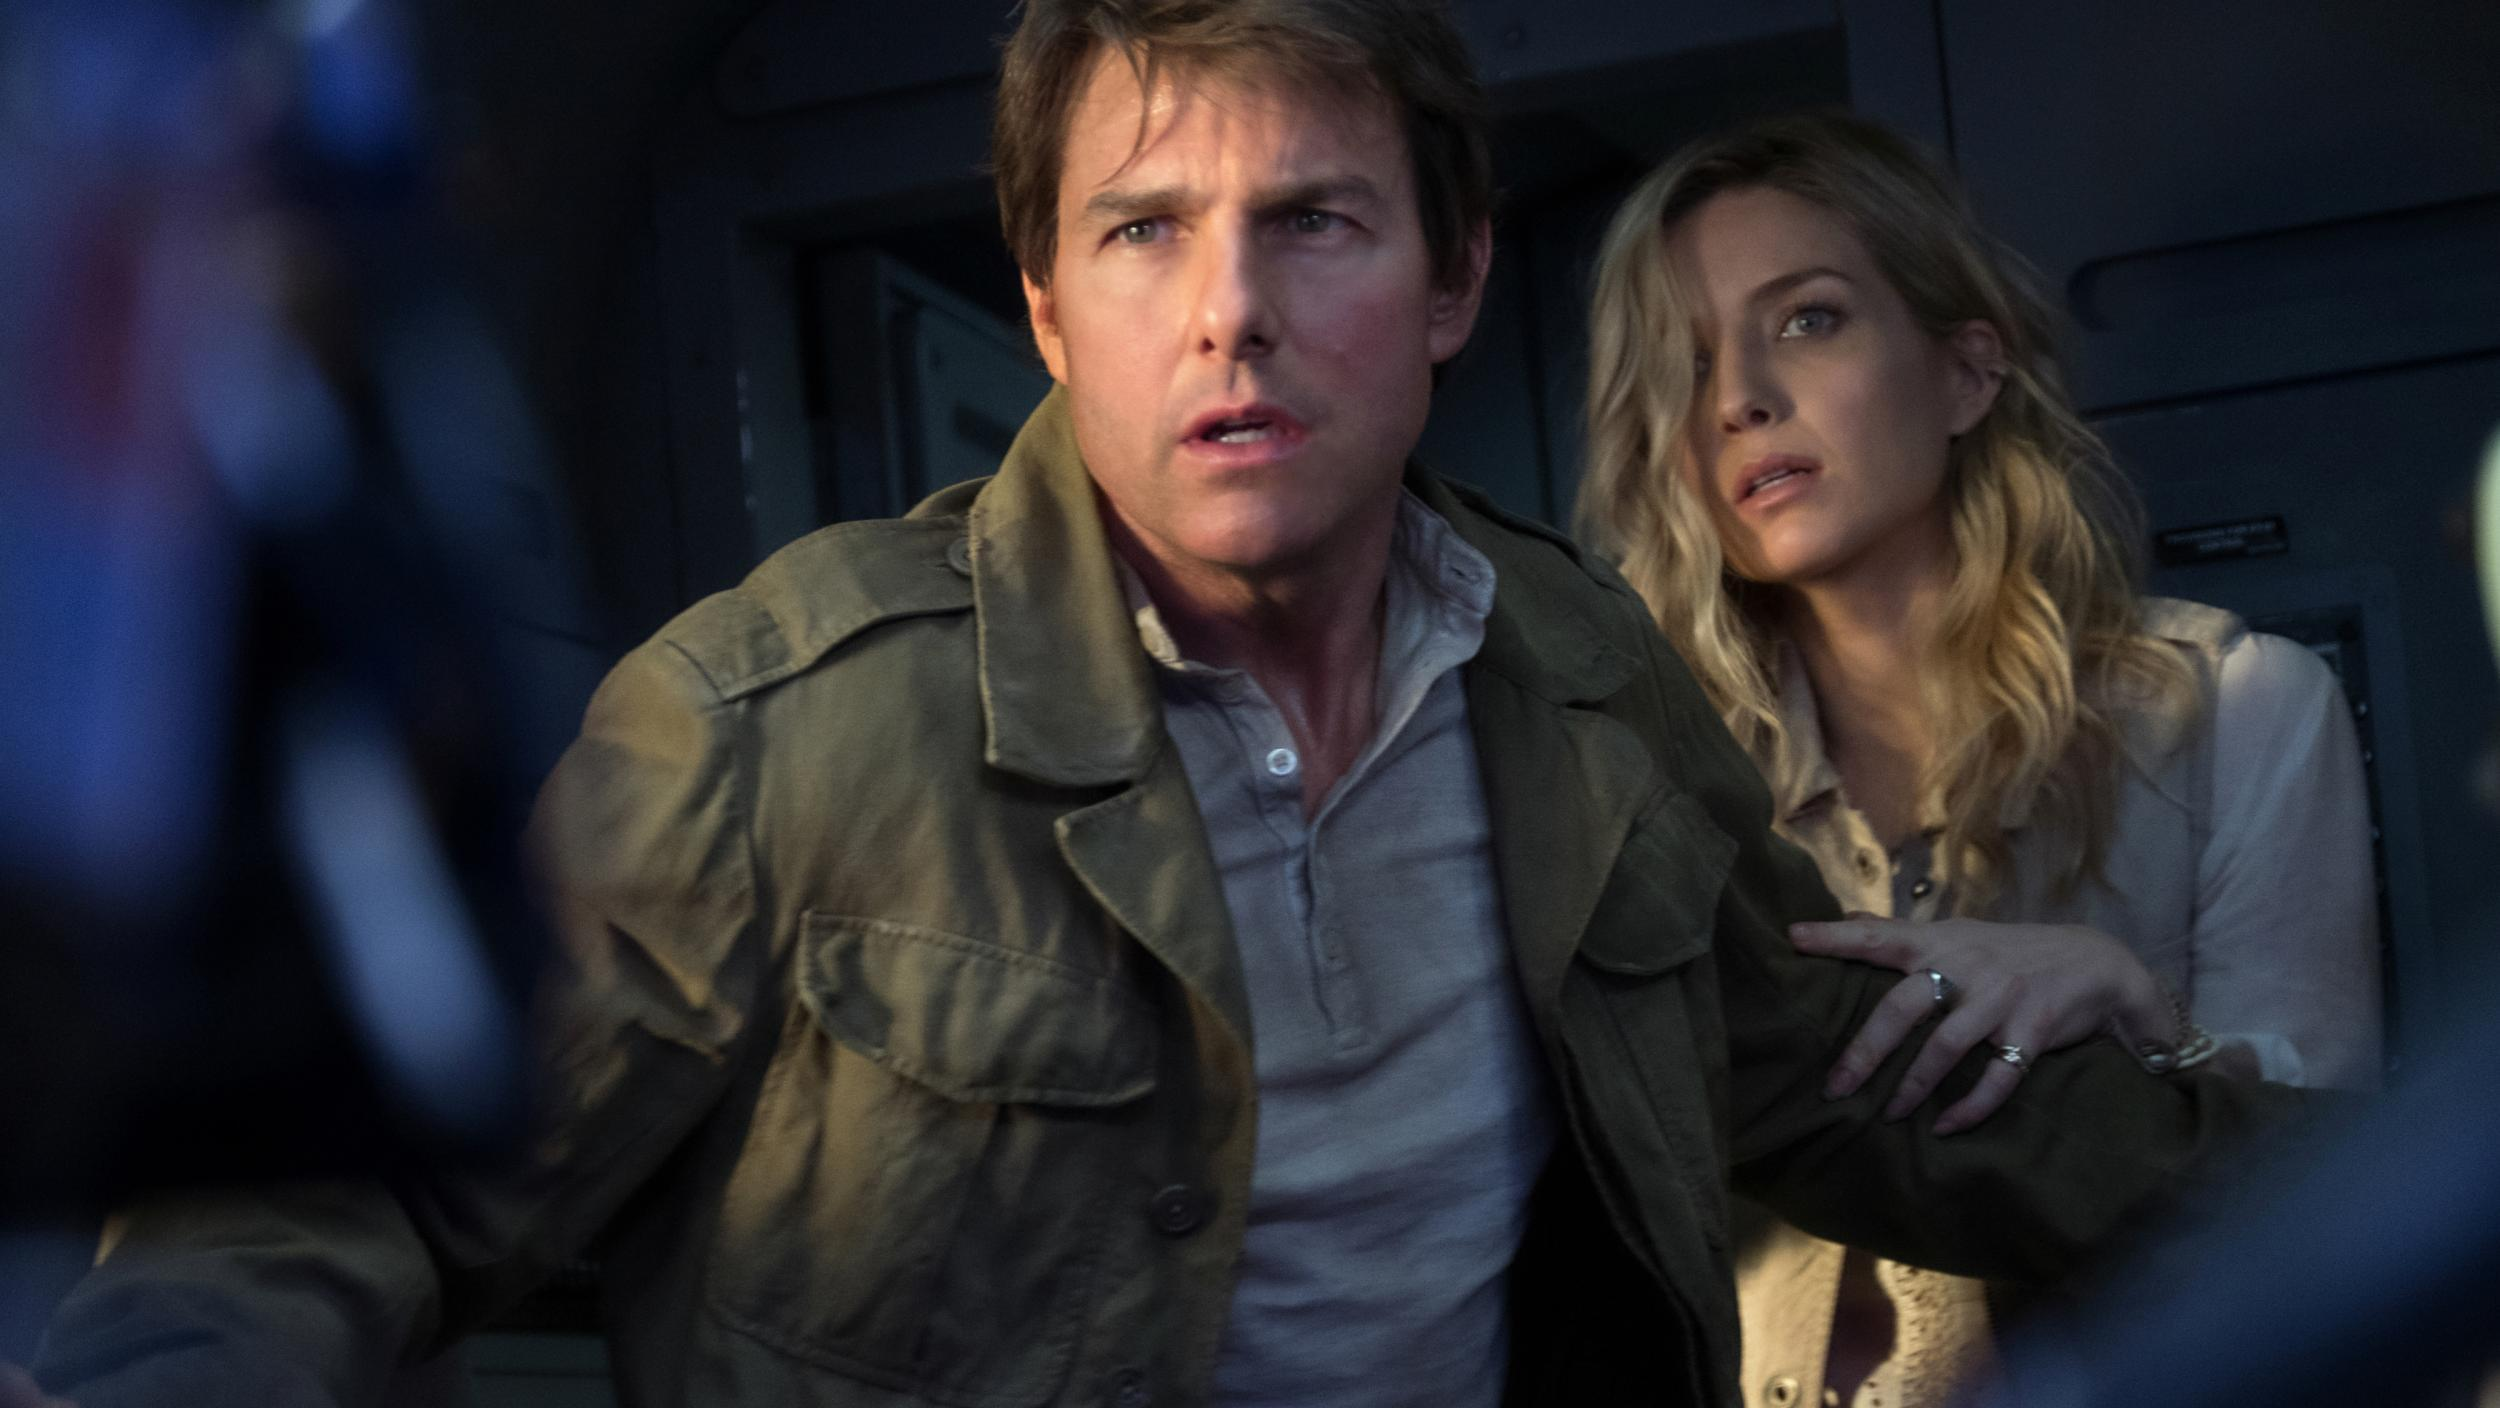 The Mummy trailer 2: Action packed new clip from Tom Cruise film | The  Independent